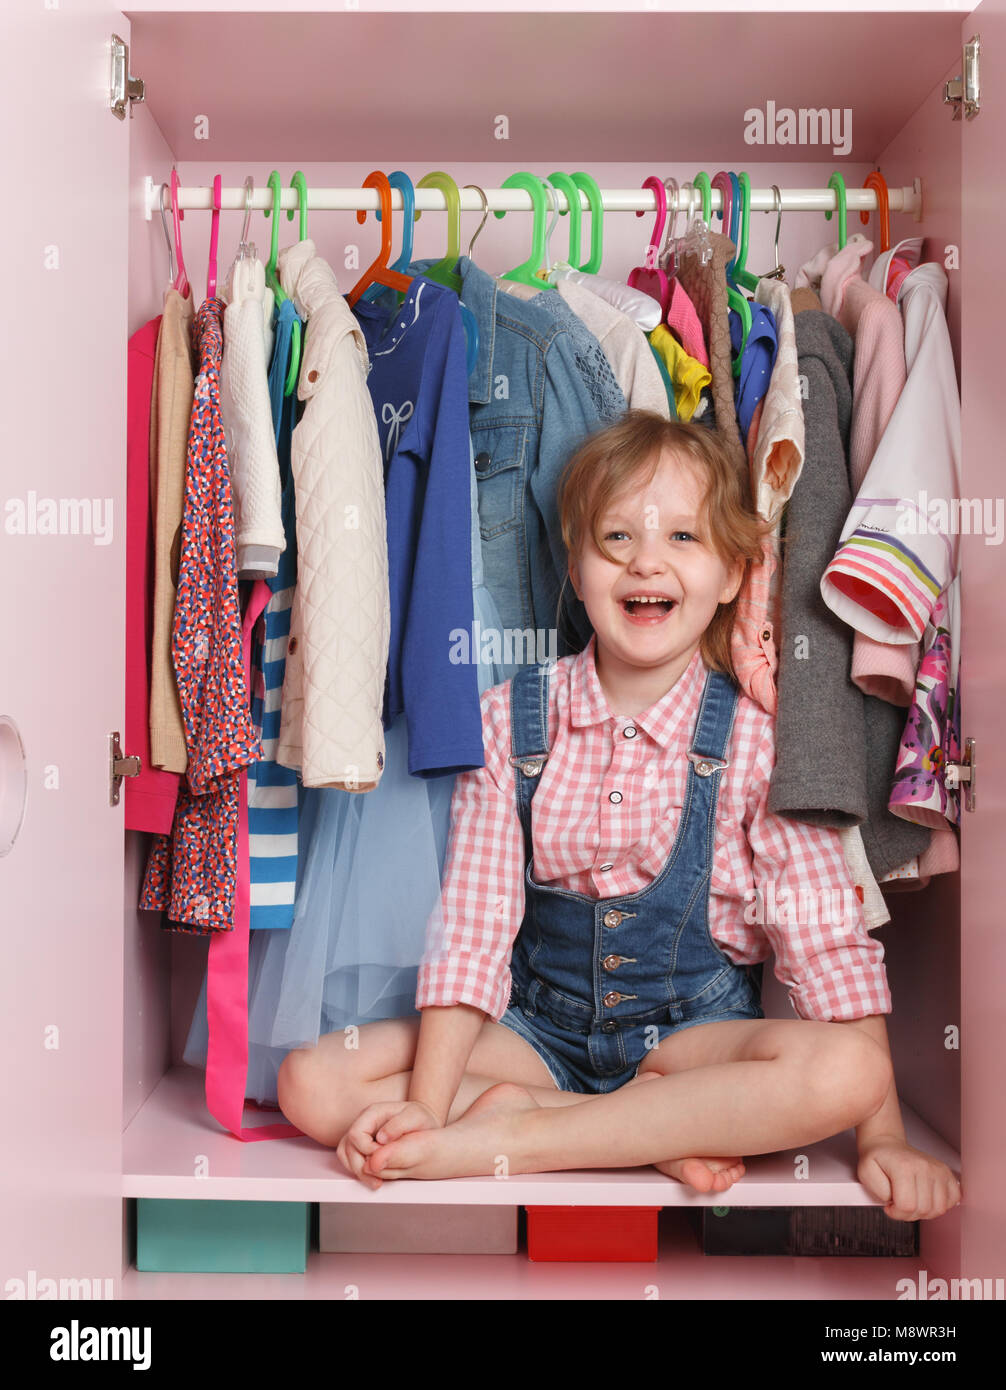 A little girl is sitting in a closet with a children's department. Storage system for children's things Stock Photo